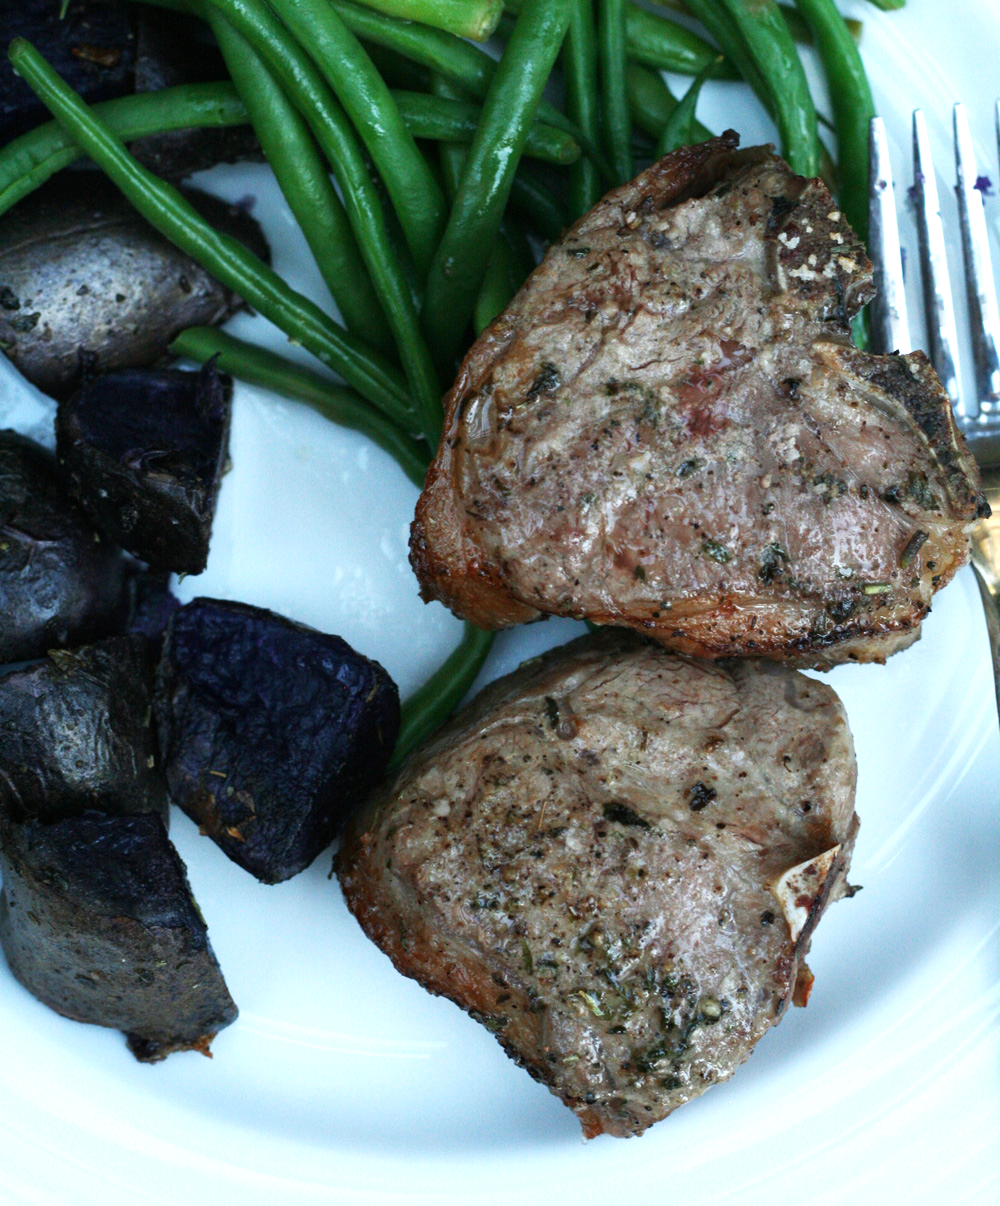 Broiled Lamb Chops with Herbs de Provence